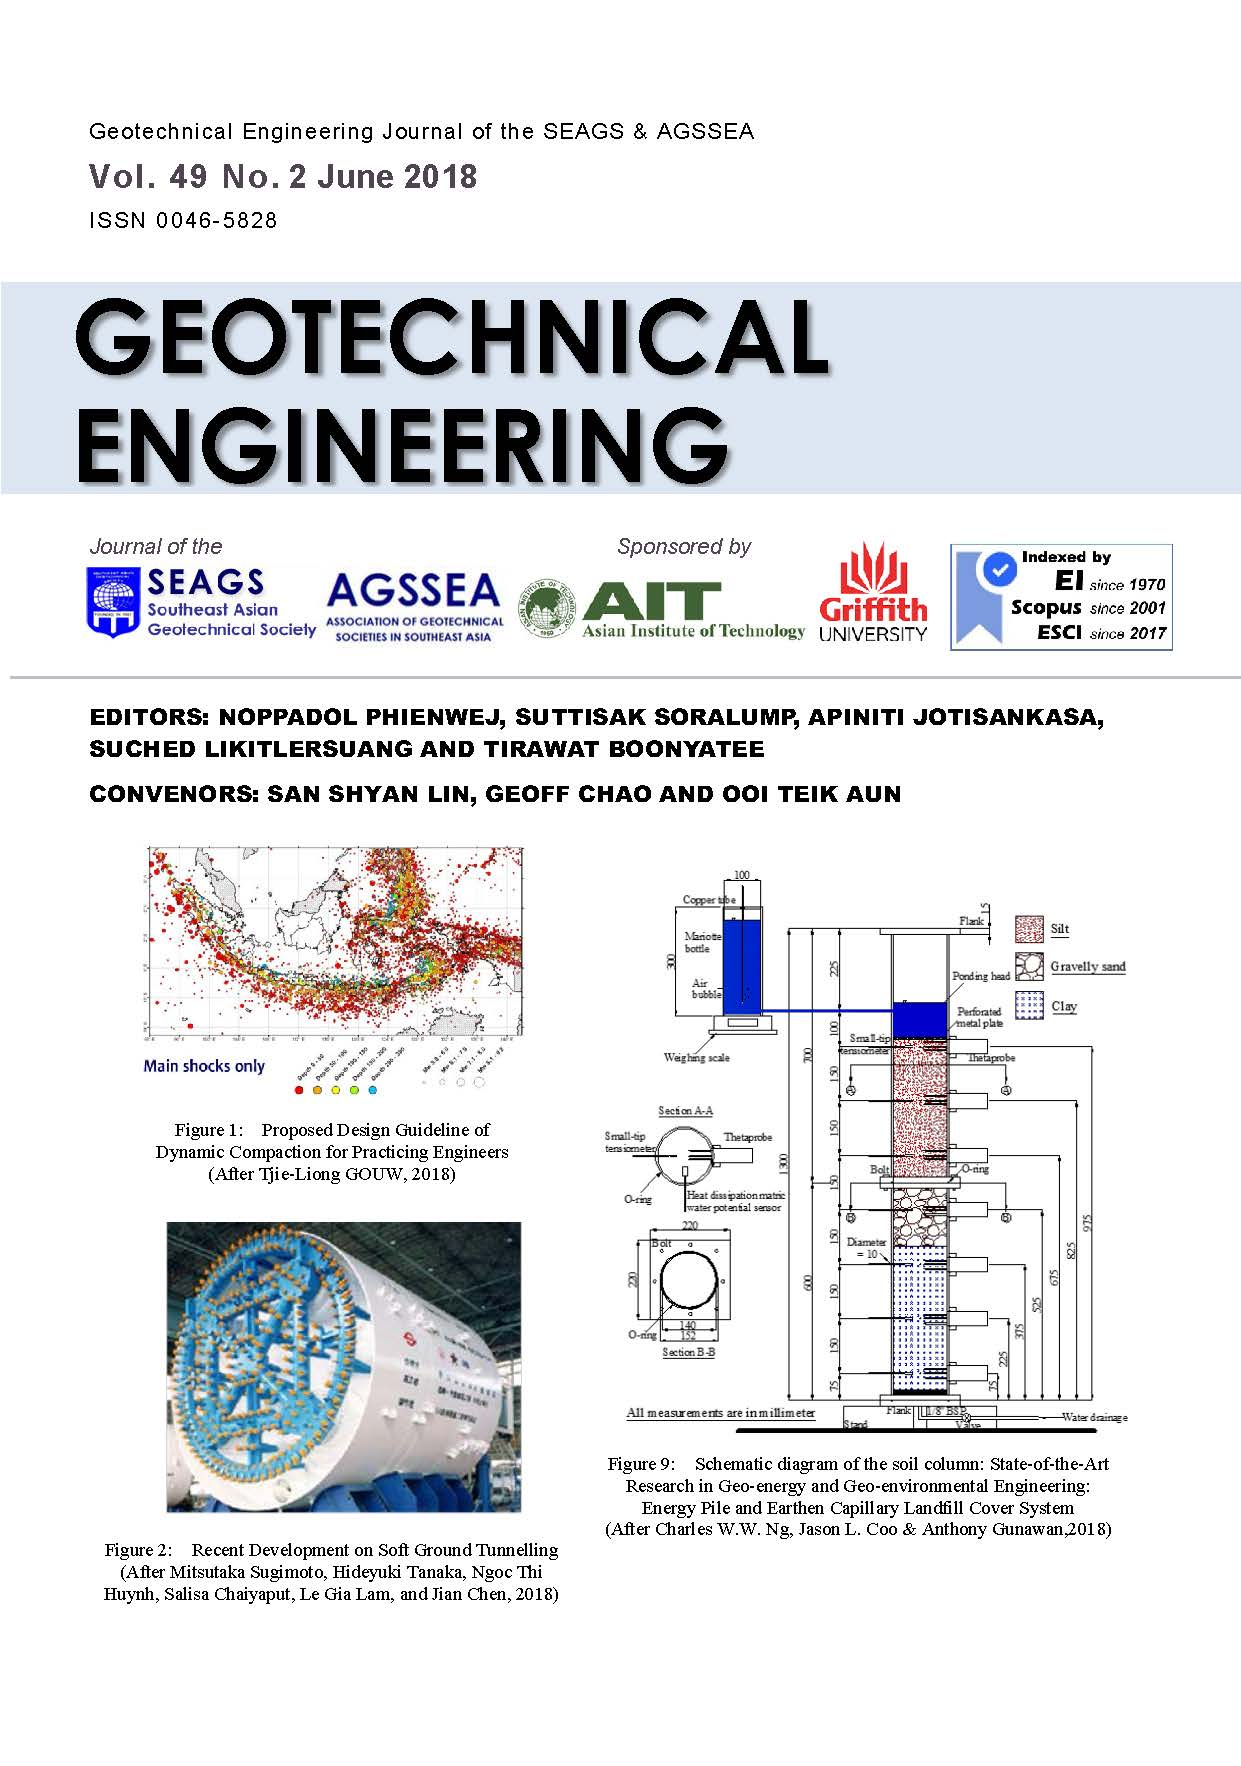 Geotechnical Engineering Journal of the SEAGS & AGSSEA Vol. 49 No. 2 June 2018 ISSN 0046-5828 Editors: Noppadol Phienwej, Suttisak Soralump, Ainiti Jotisankasa, Suched Likitlersuang and Tirawat Boonyatee Convenors: San […]